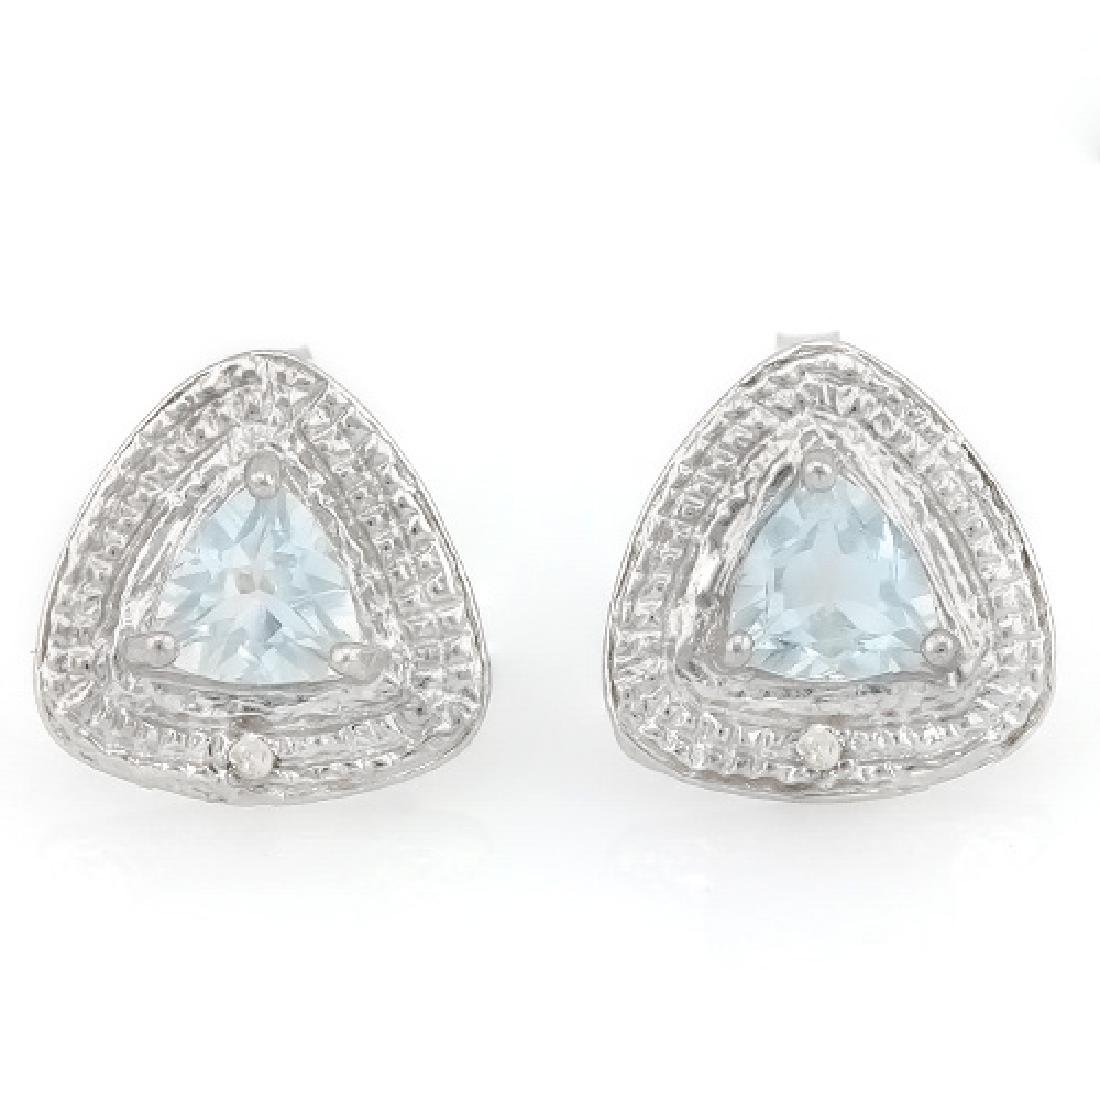 2/3 CARAT AQUAMARINE & DIAMOND 925 STERLING SILVER EARR